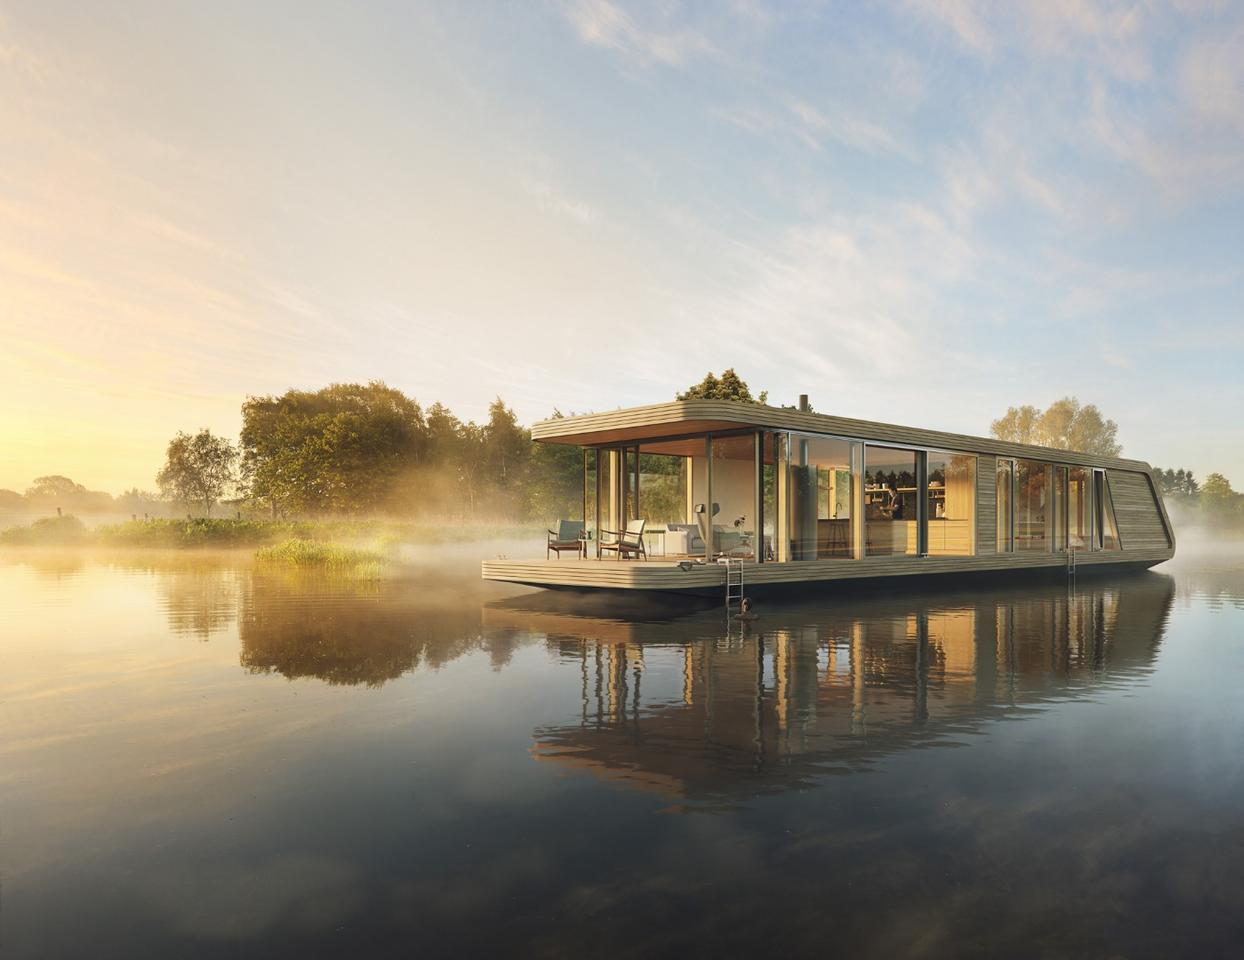 Dutch architectural firm +31Architects have designed a series of solar-powered houseboats